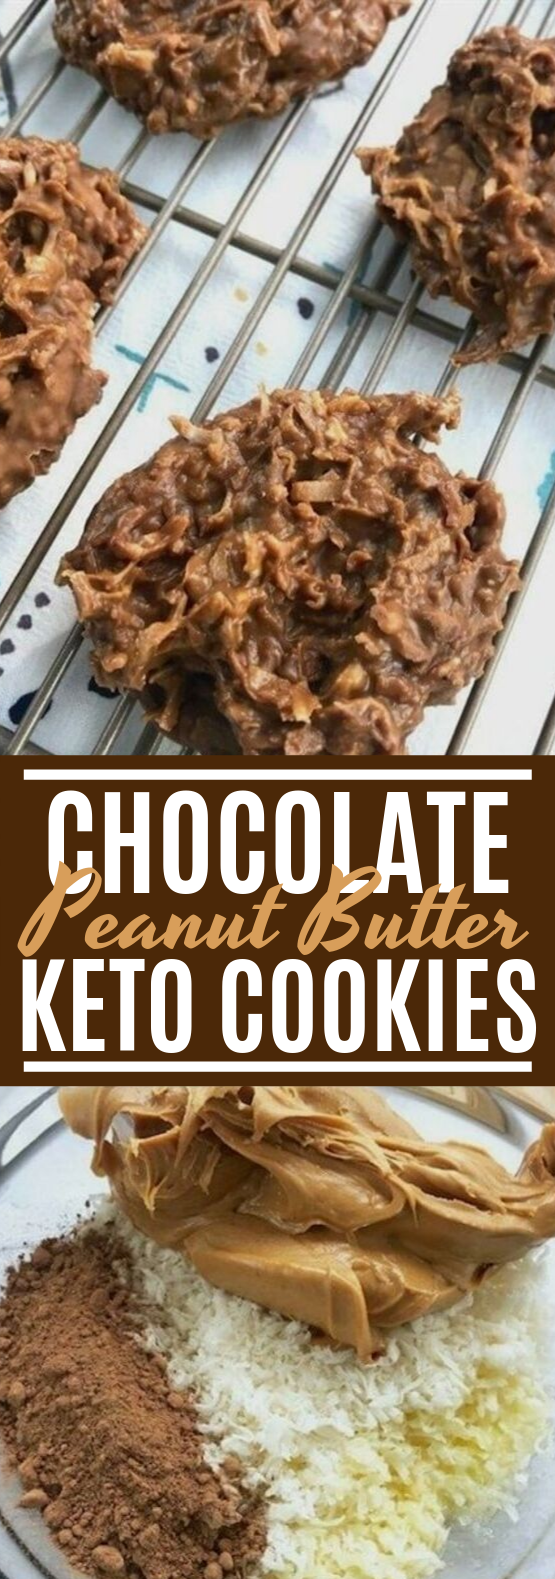 Chocolate & Peanut Butter Keto No Bake Cookies  #keto #lowcarb